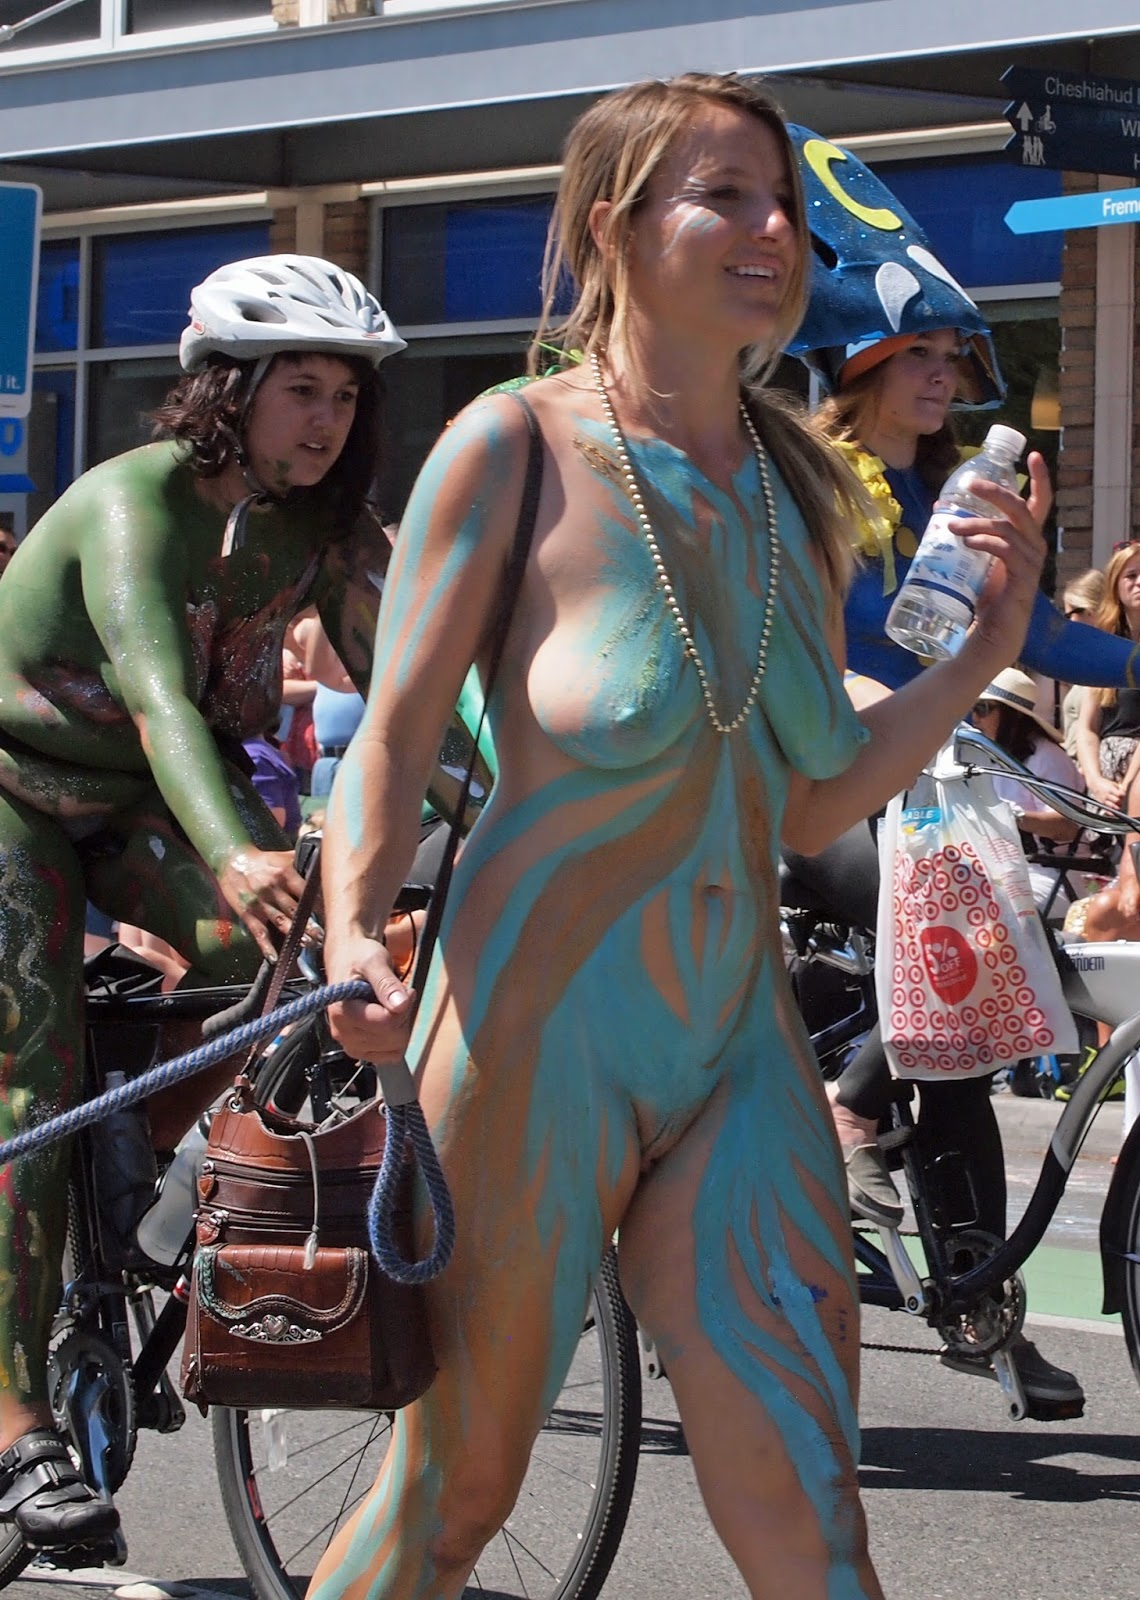 Nude women body paint public sorry, does